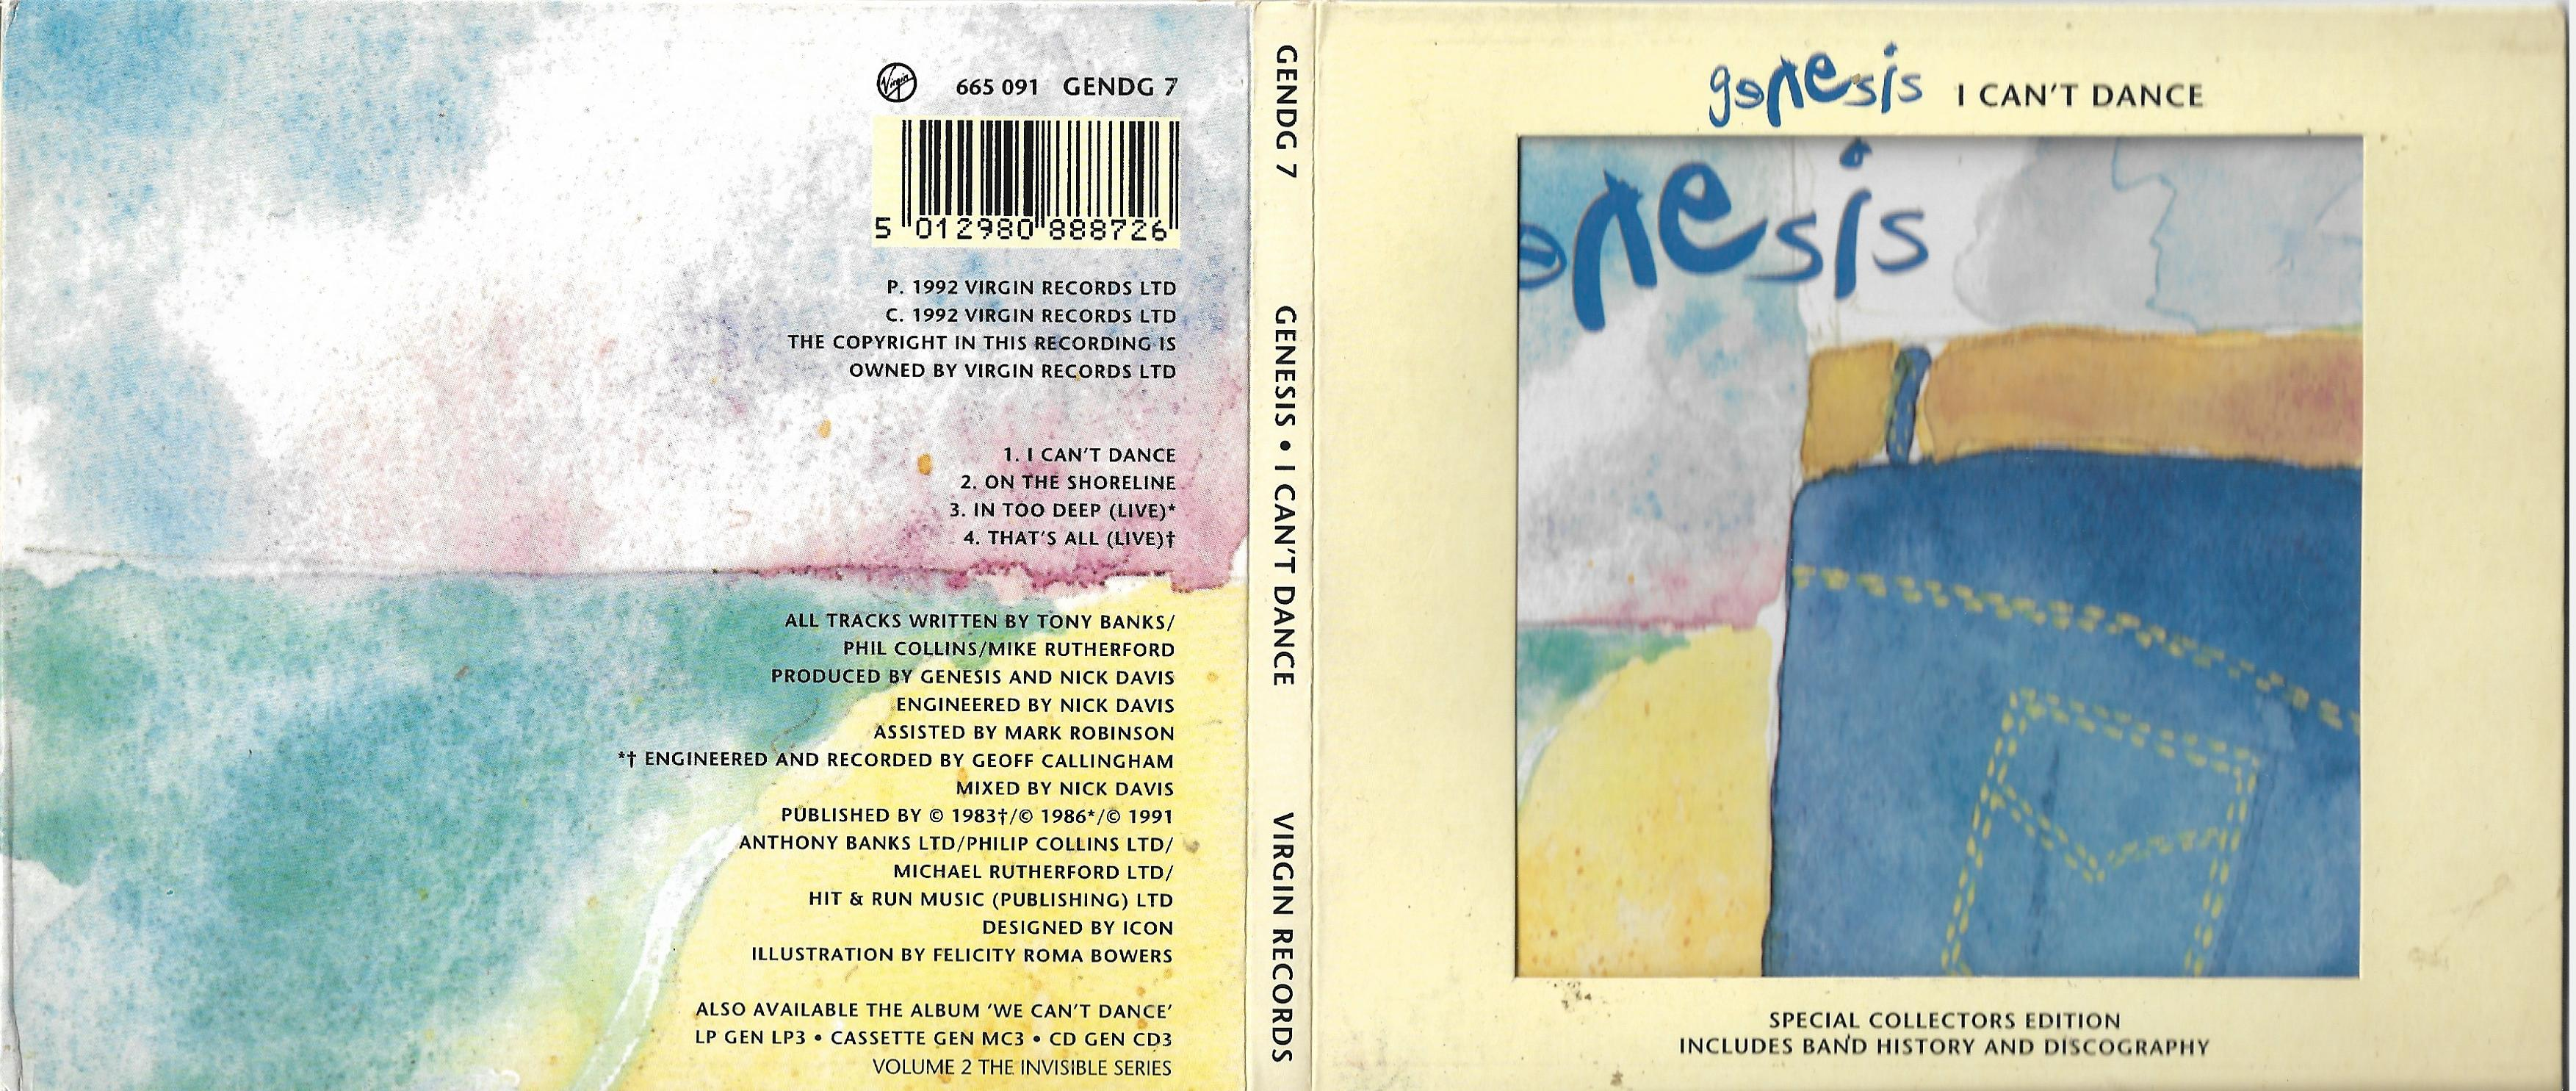 GENESIS - Abacab (2007 Remastered edition) - CD